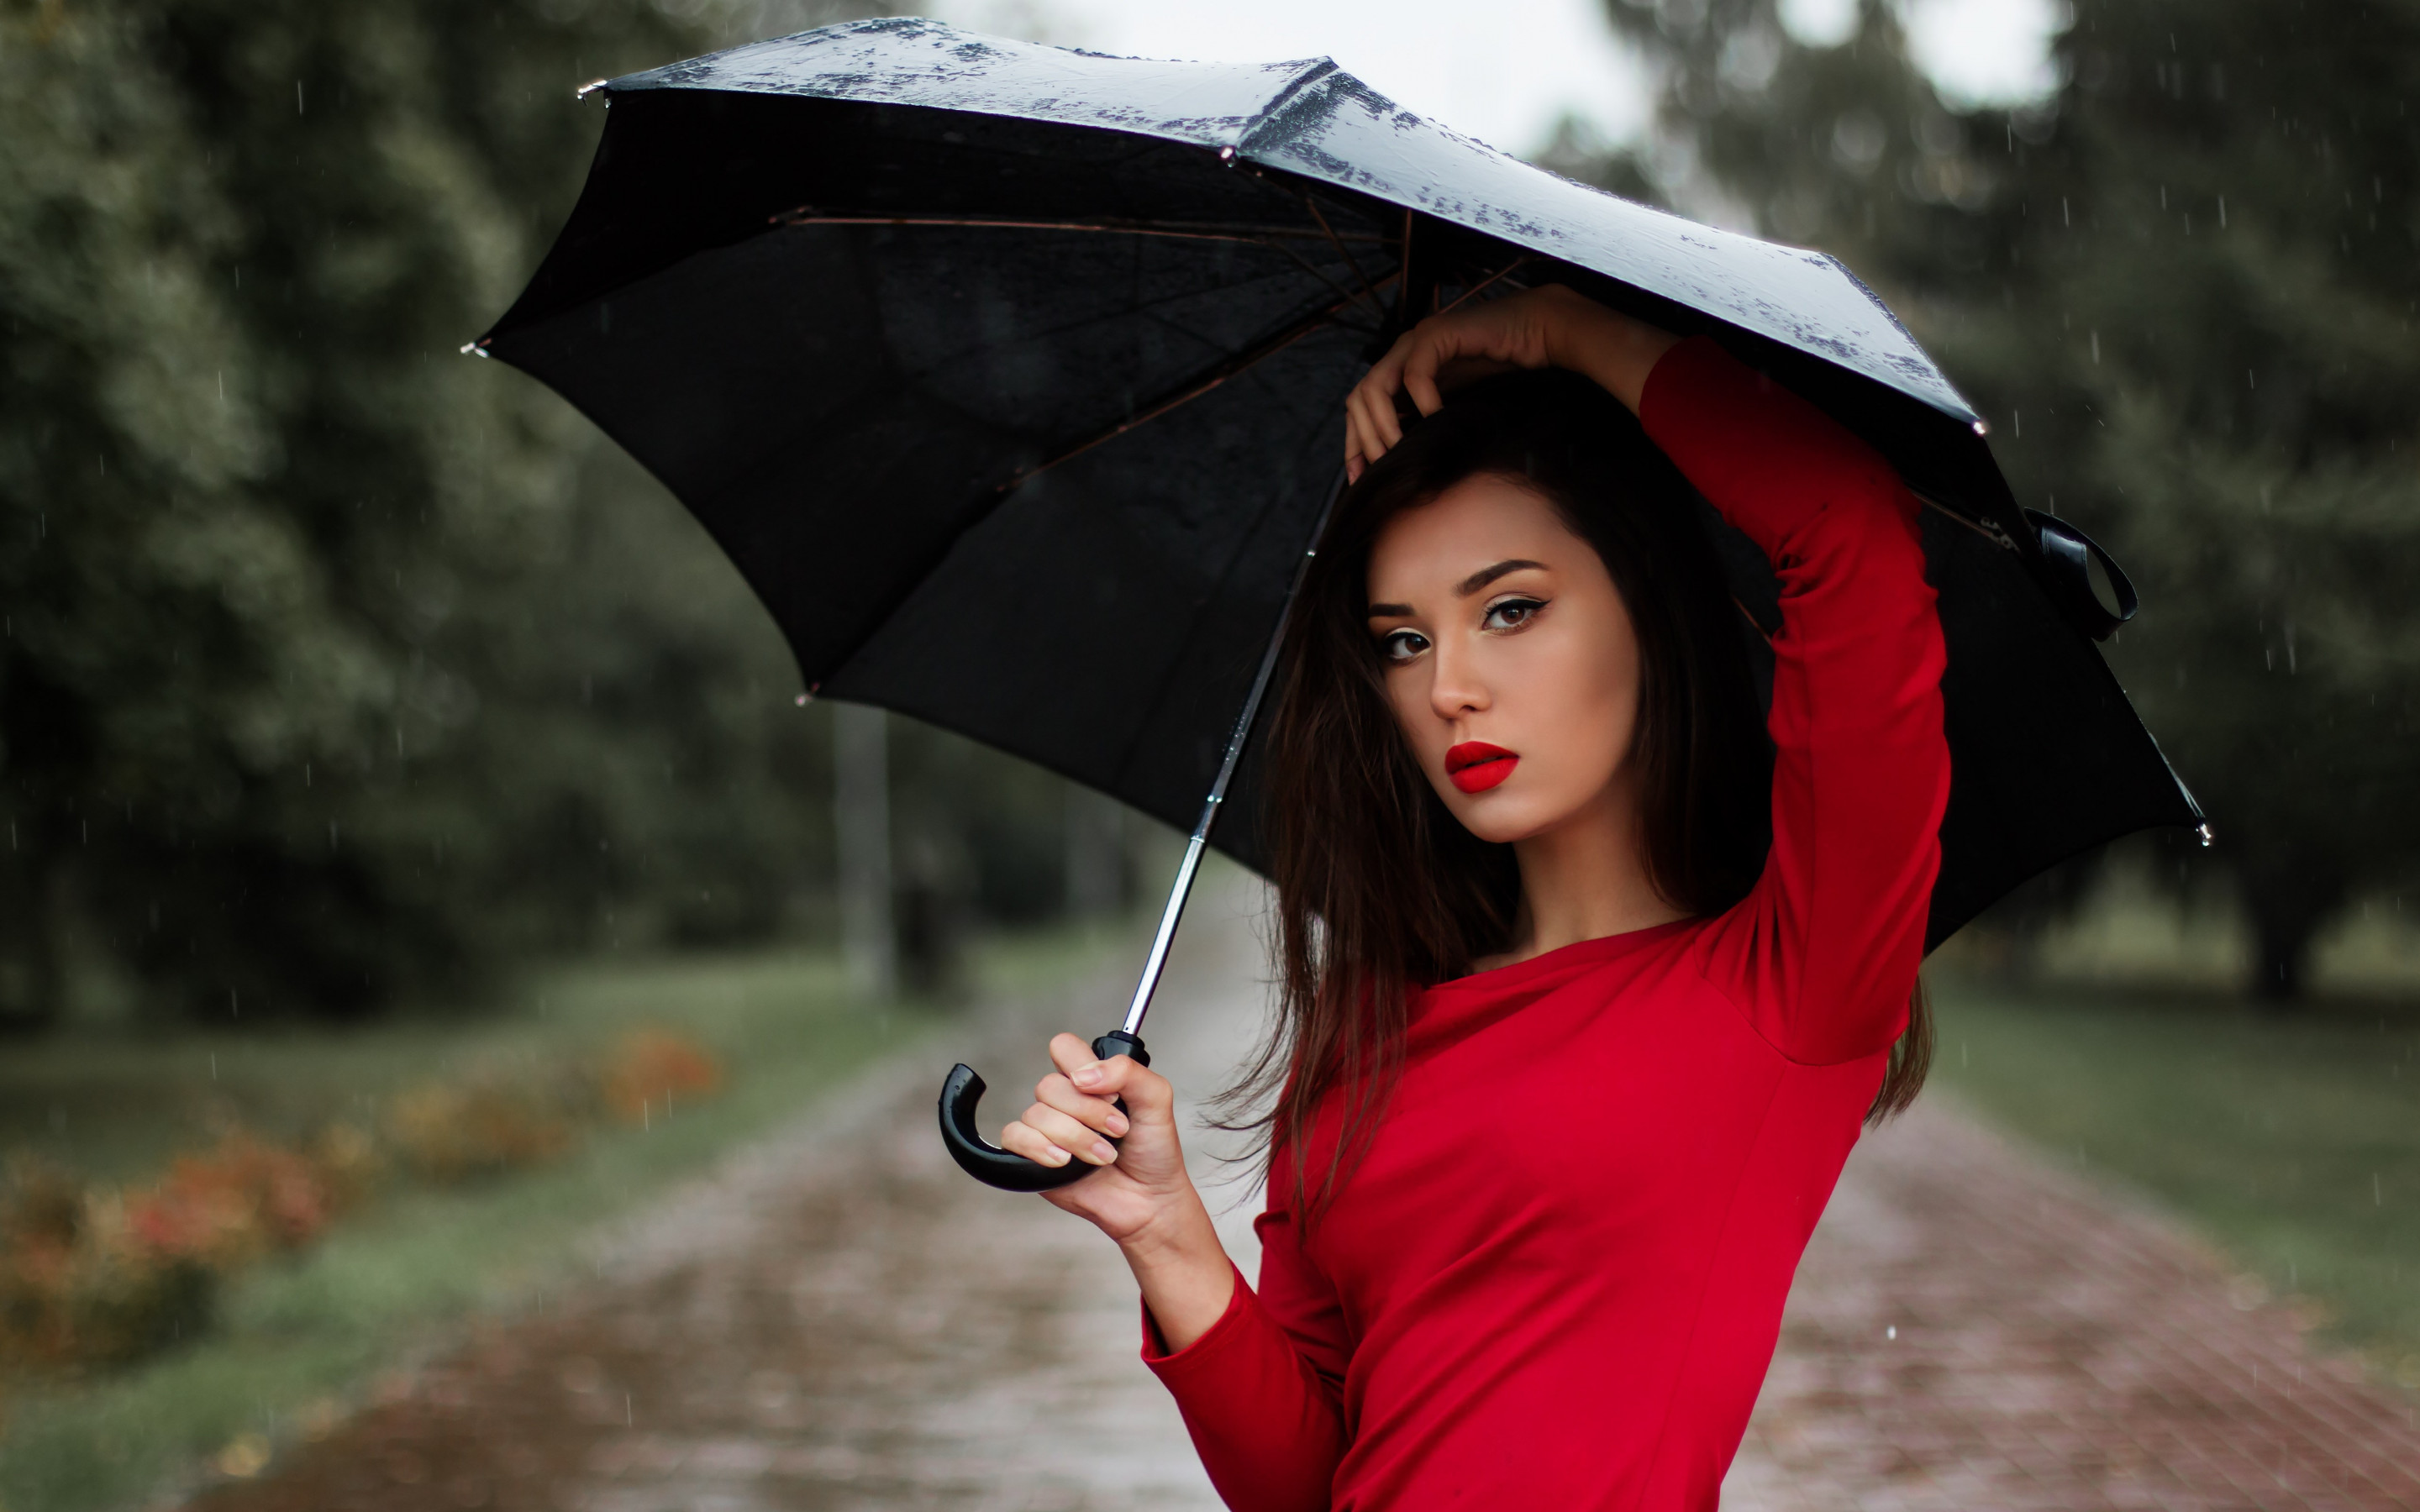 Beauitful girl in a rainy day | 2880x1800 wallpaper